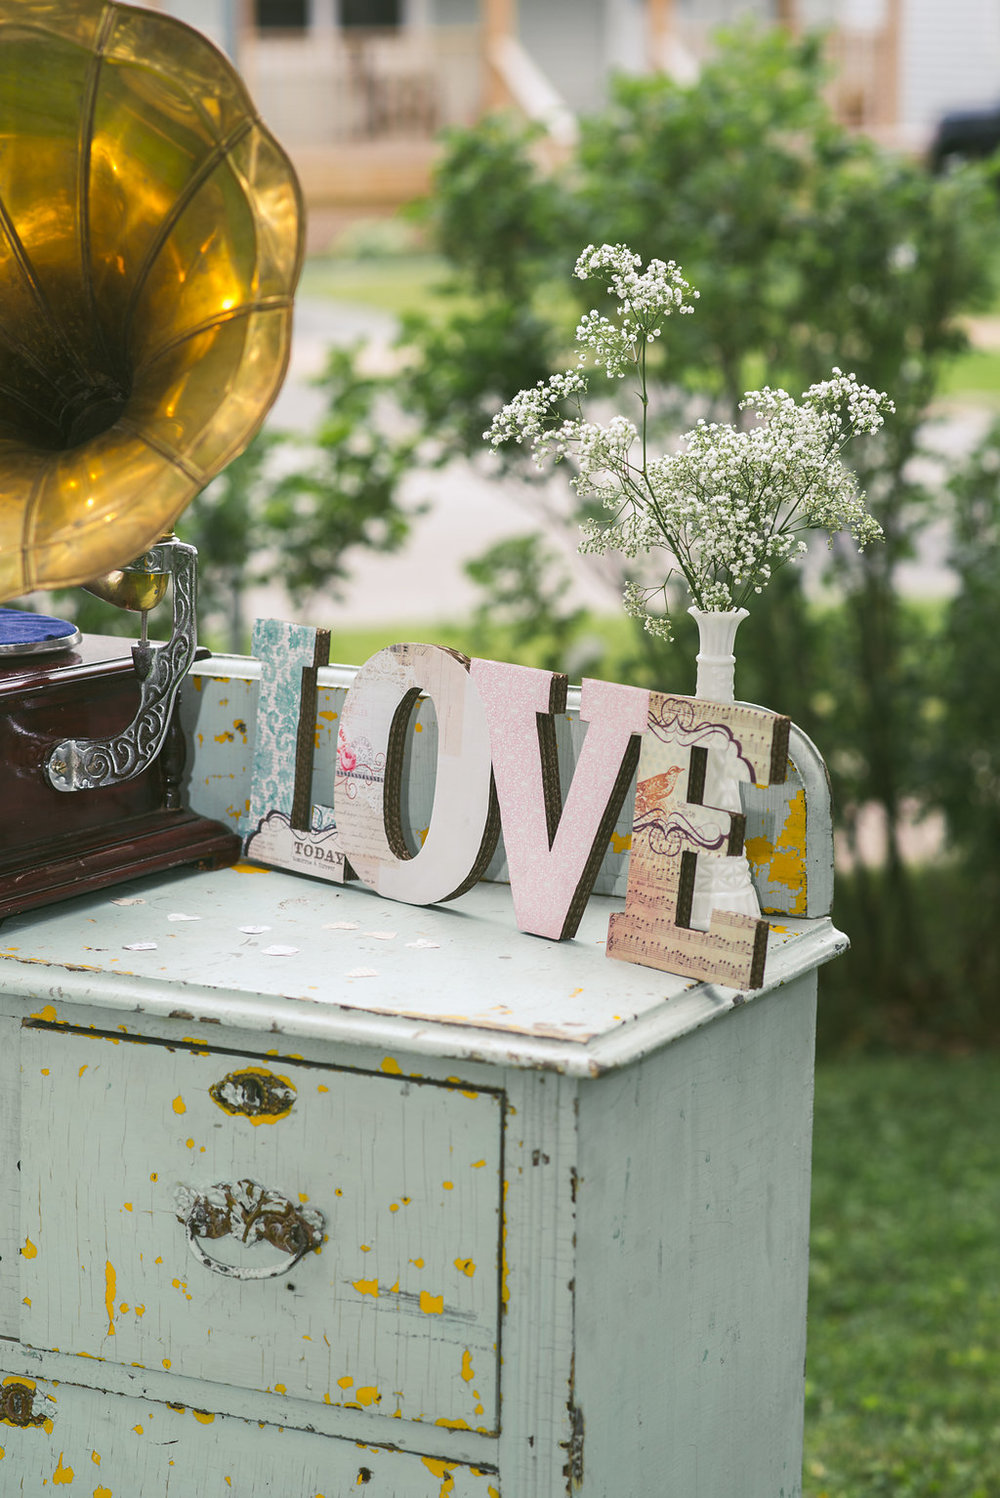 This bride went all out! An old gramophone on top of a vintage chest of drawers.